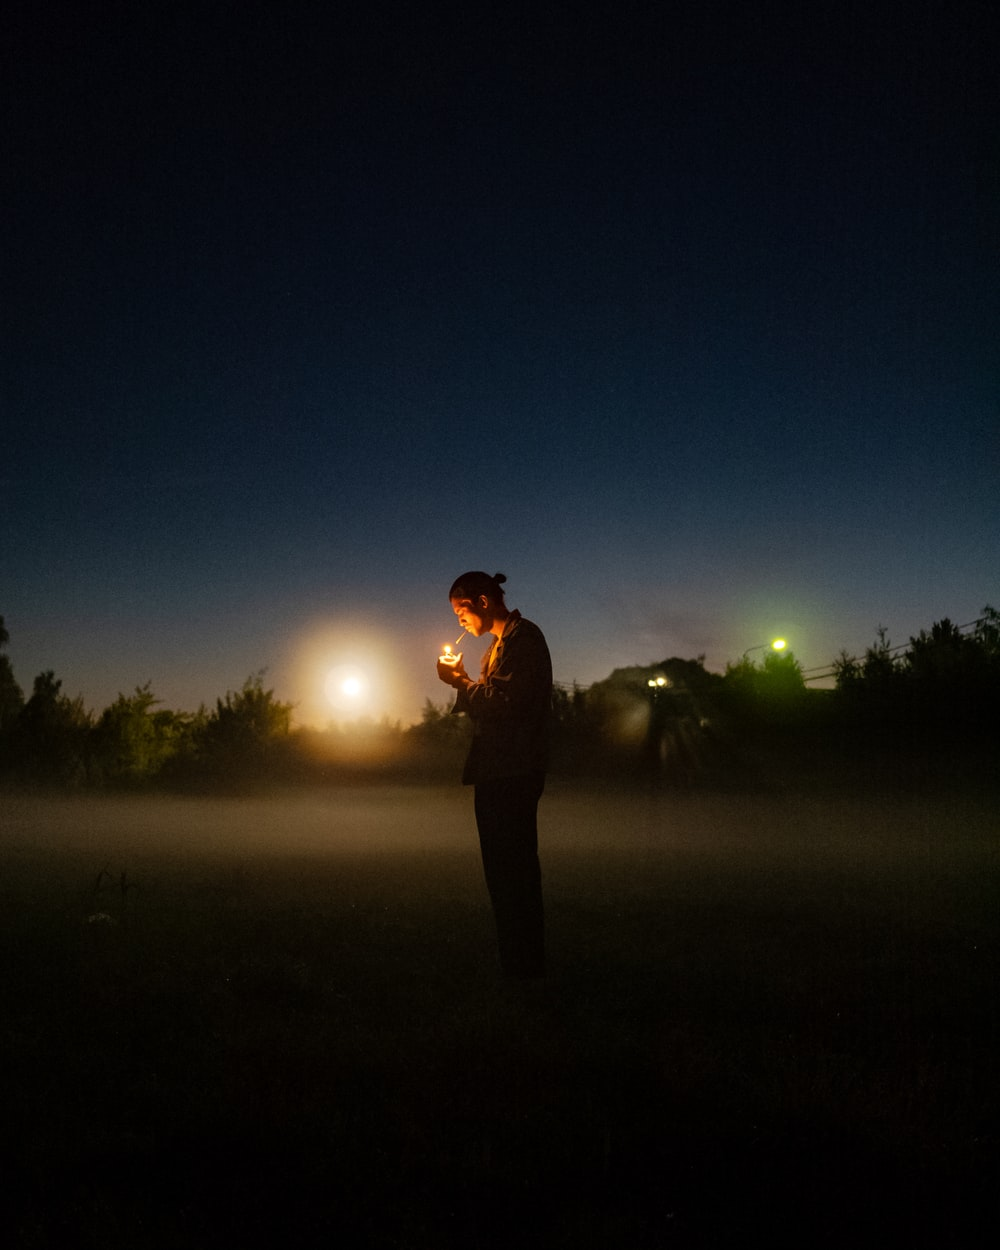 man in black jacket standing on green grass field during night time